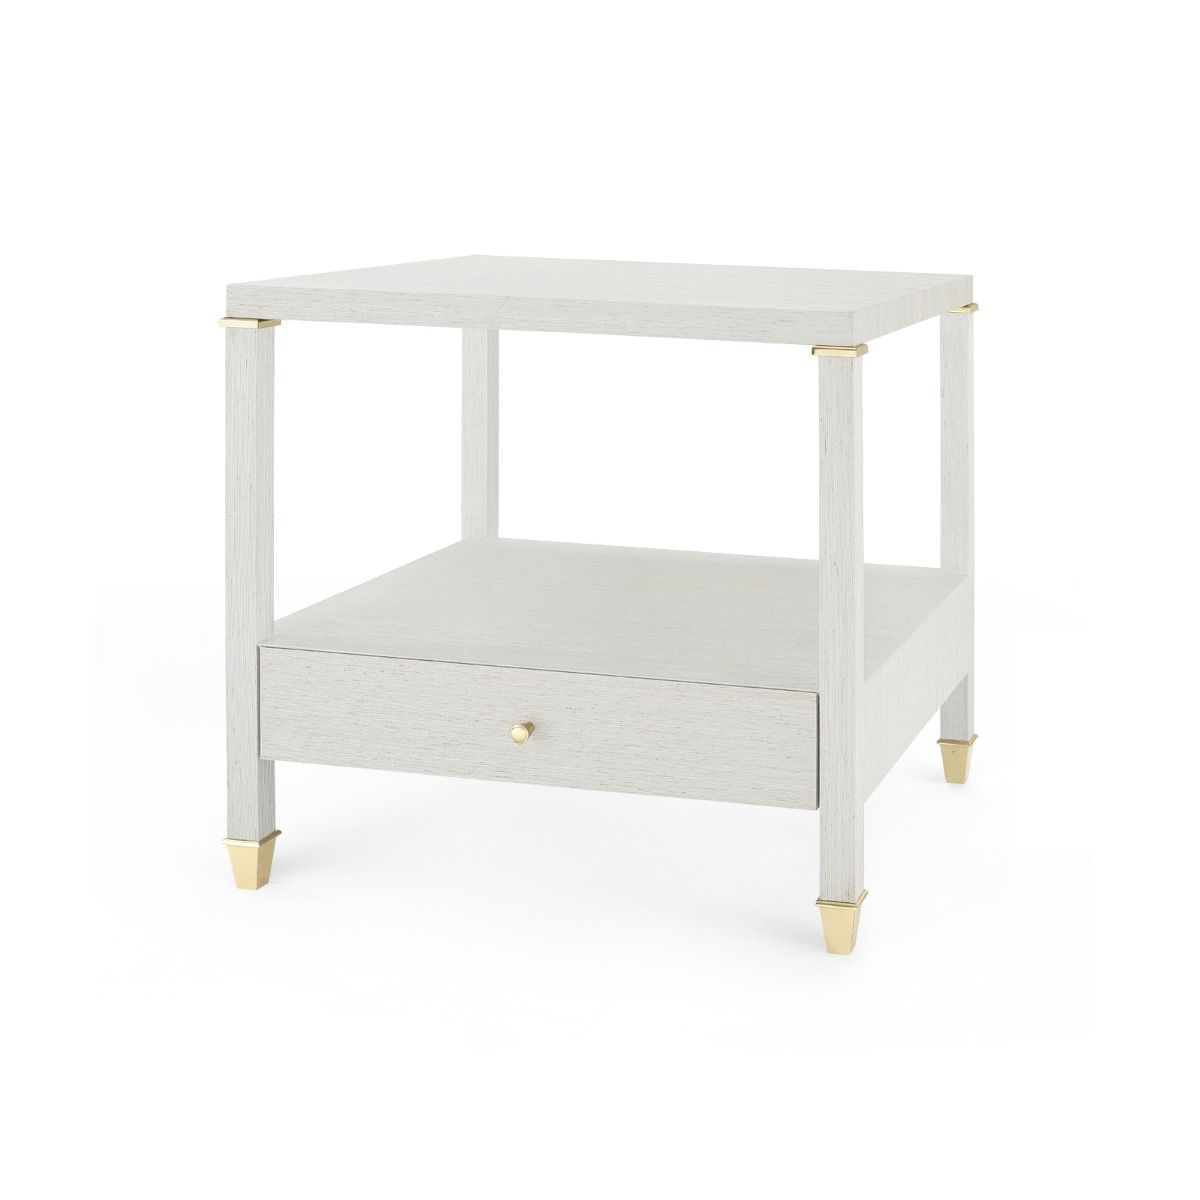 Bungalow 5 - PASCAL 1-DRAWER SIDE TABLE, SILVER